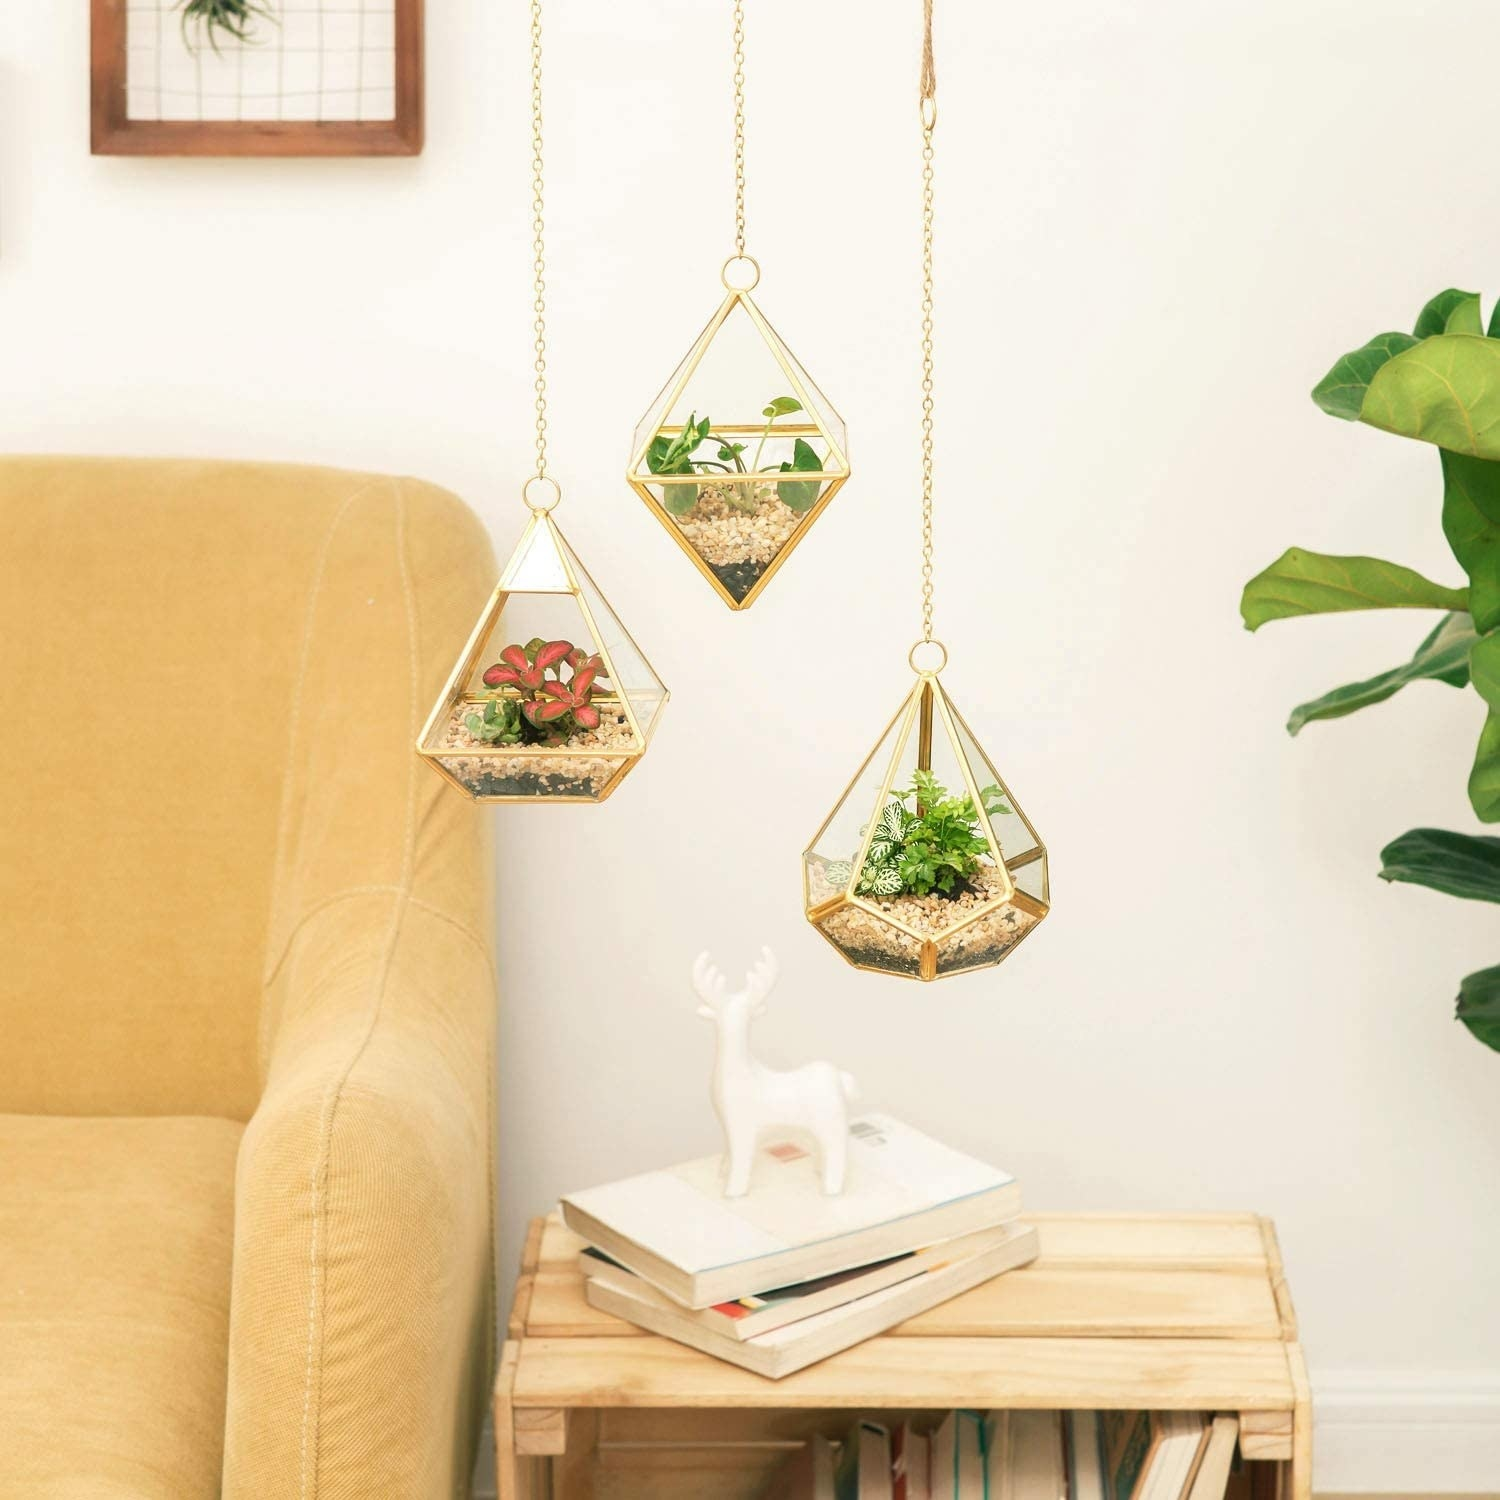 Three geometric hanging terrariums with plants inside in a living room